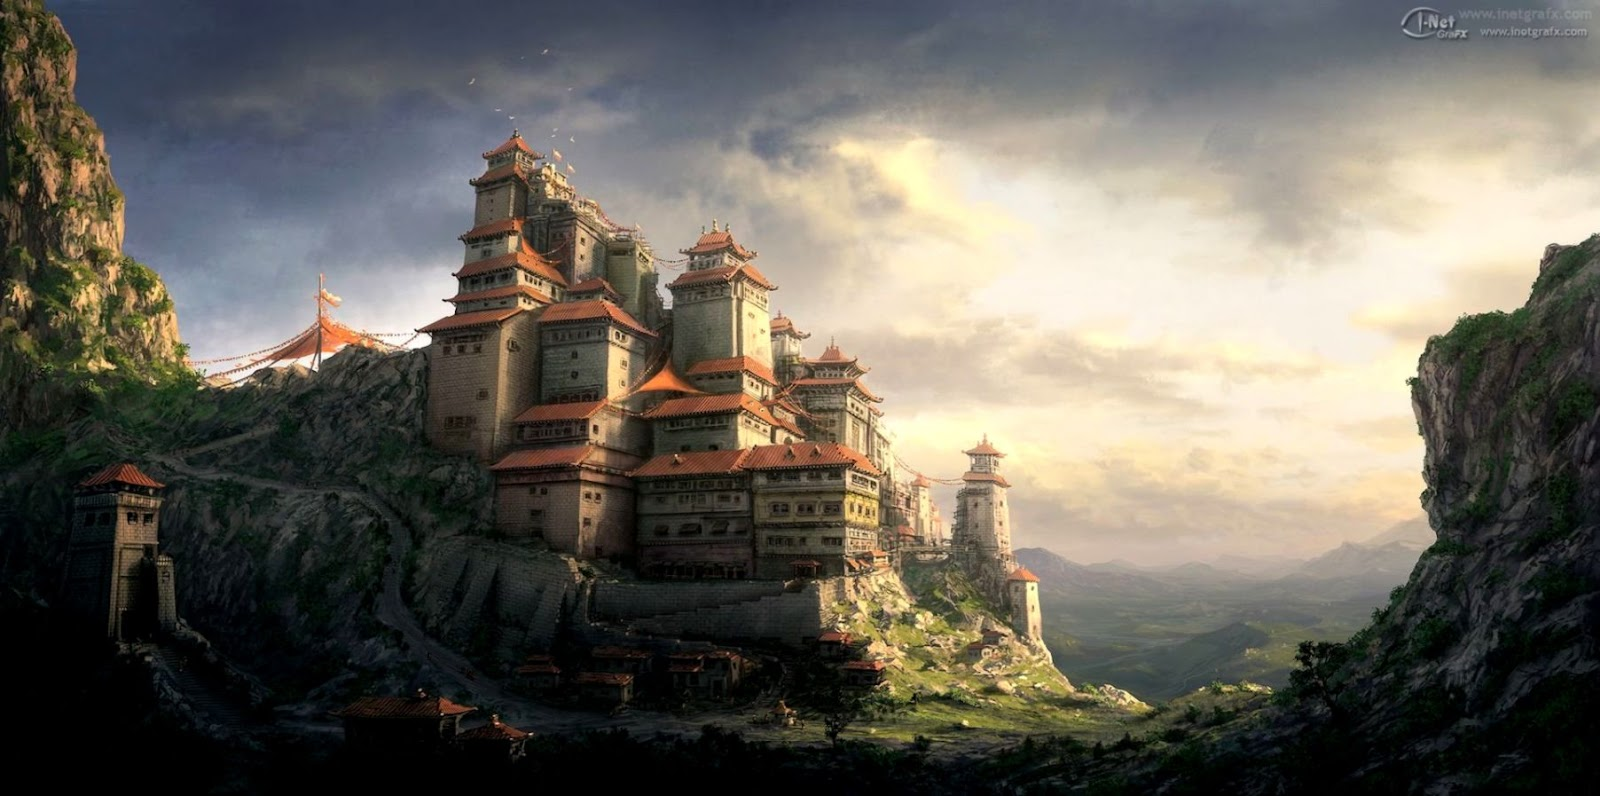 Fantasy Castle Wallpaper Hd Wallpapers Simple